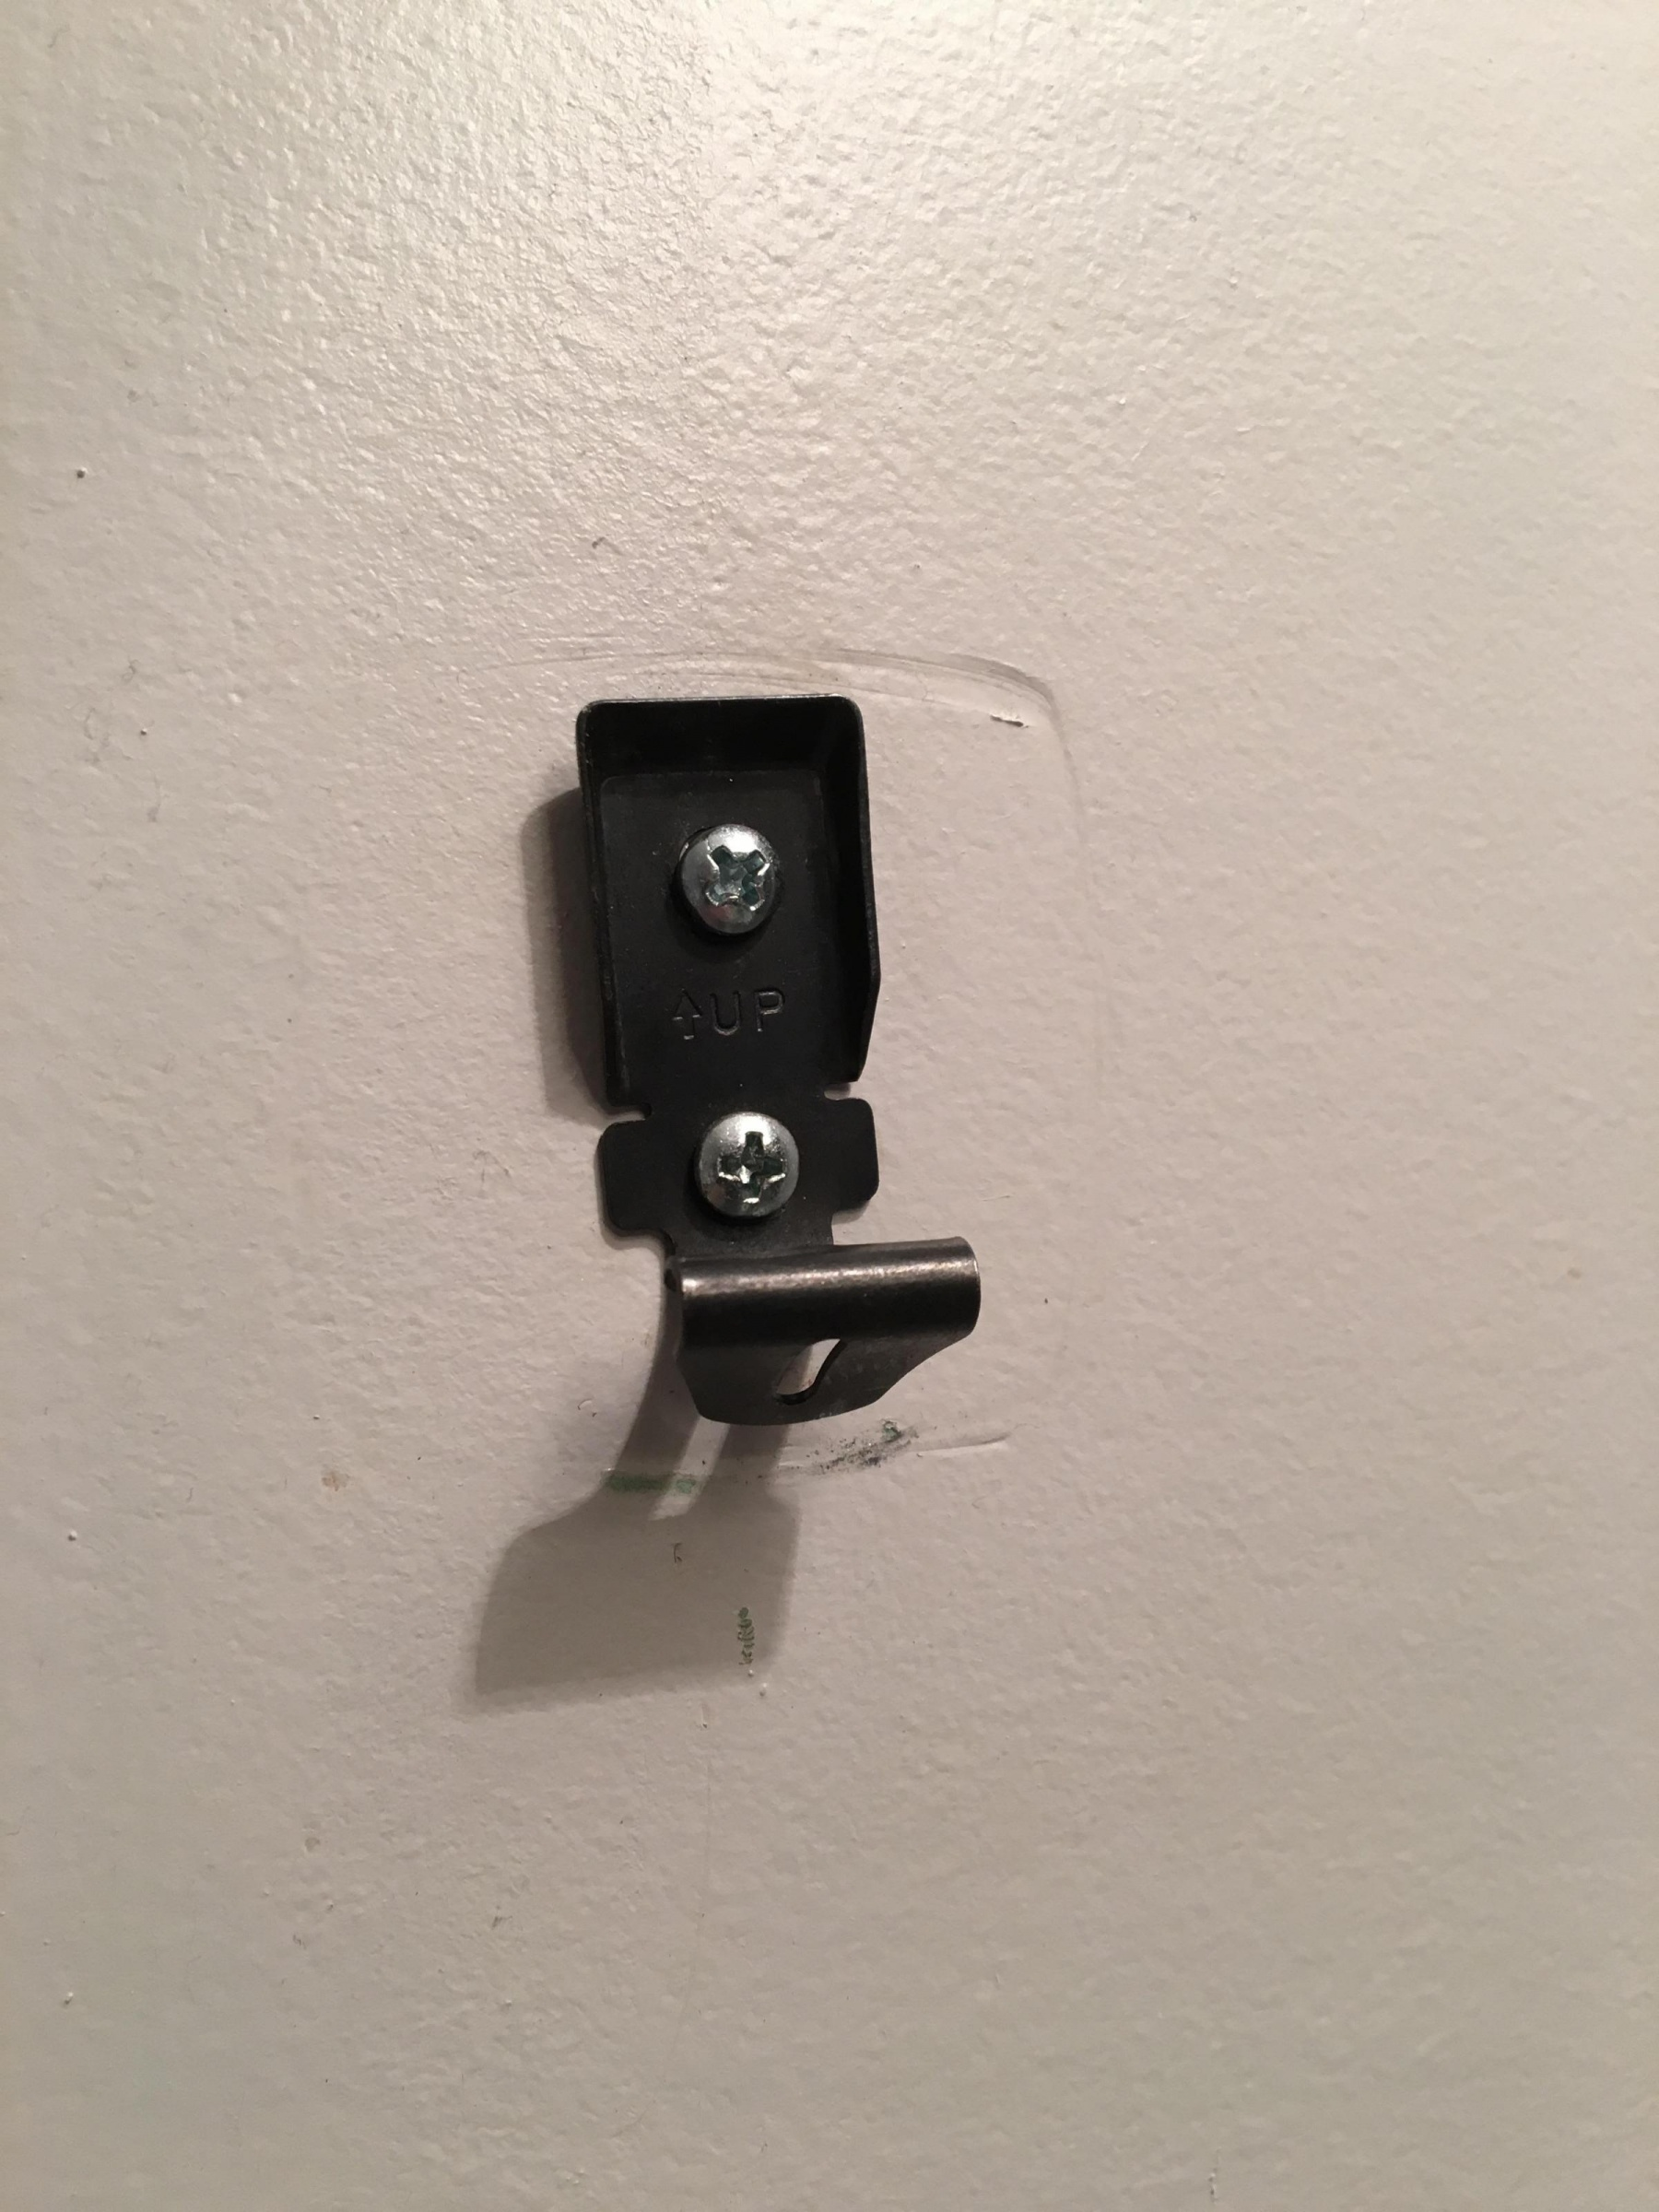 Hate these towel/toilet paper holder hardware...-a5ee439a-2aee-4f2f-b61e-3574a65cda74_1537139803293.jpg